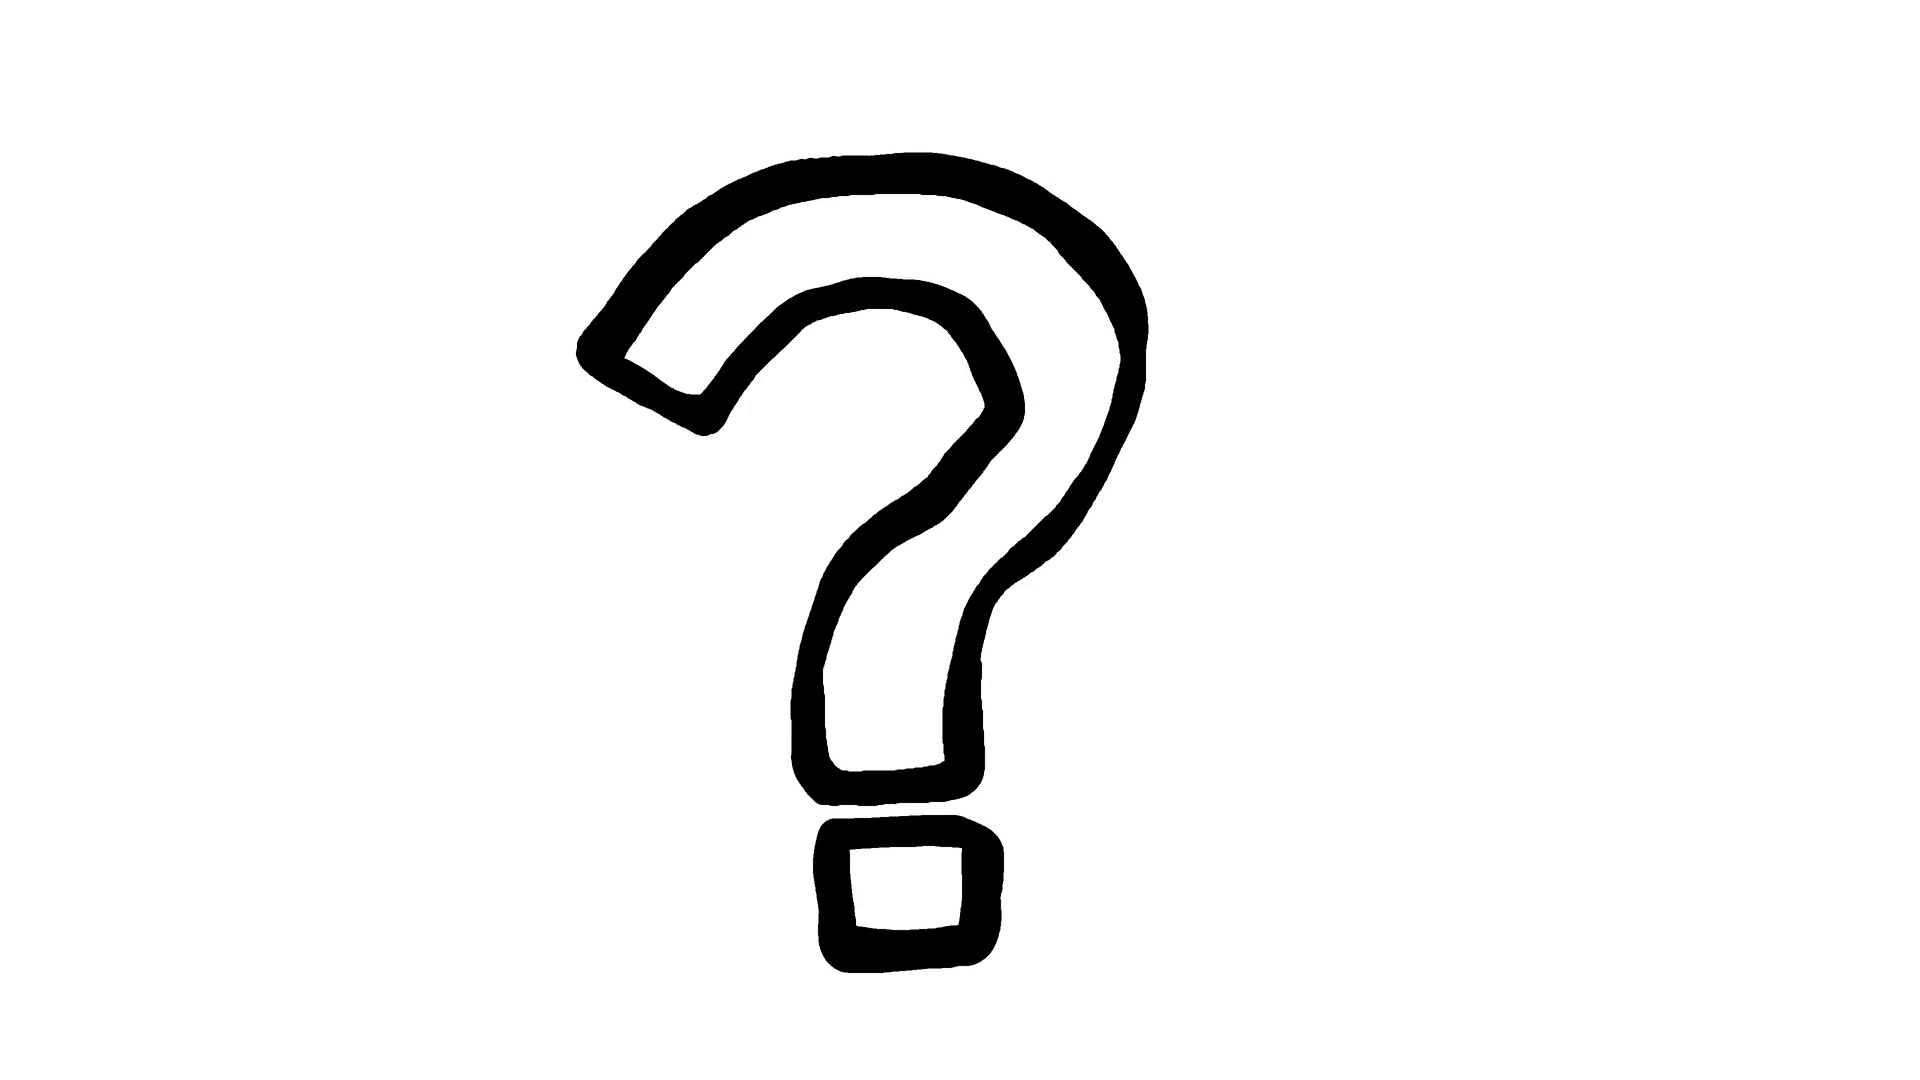 Question Mark Scribble Animation Doodle 88110 Png Images